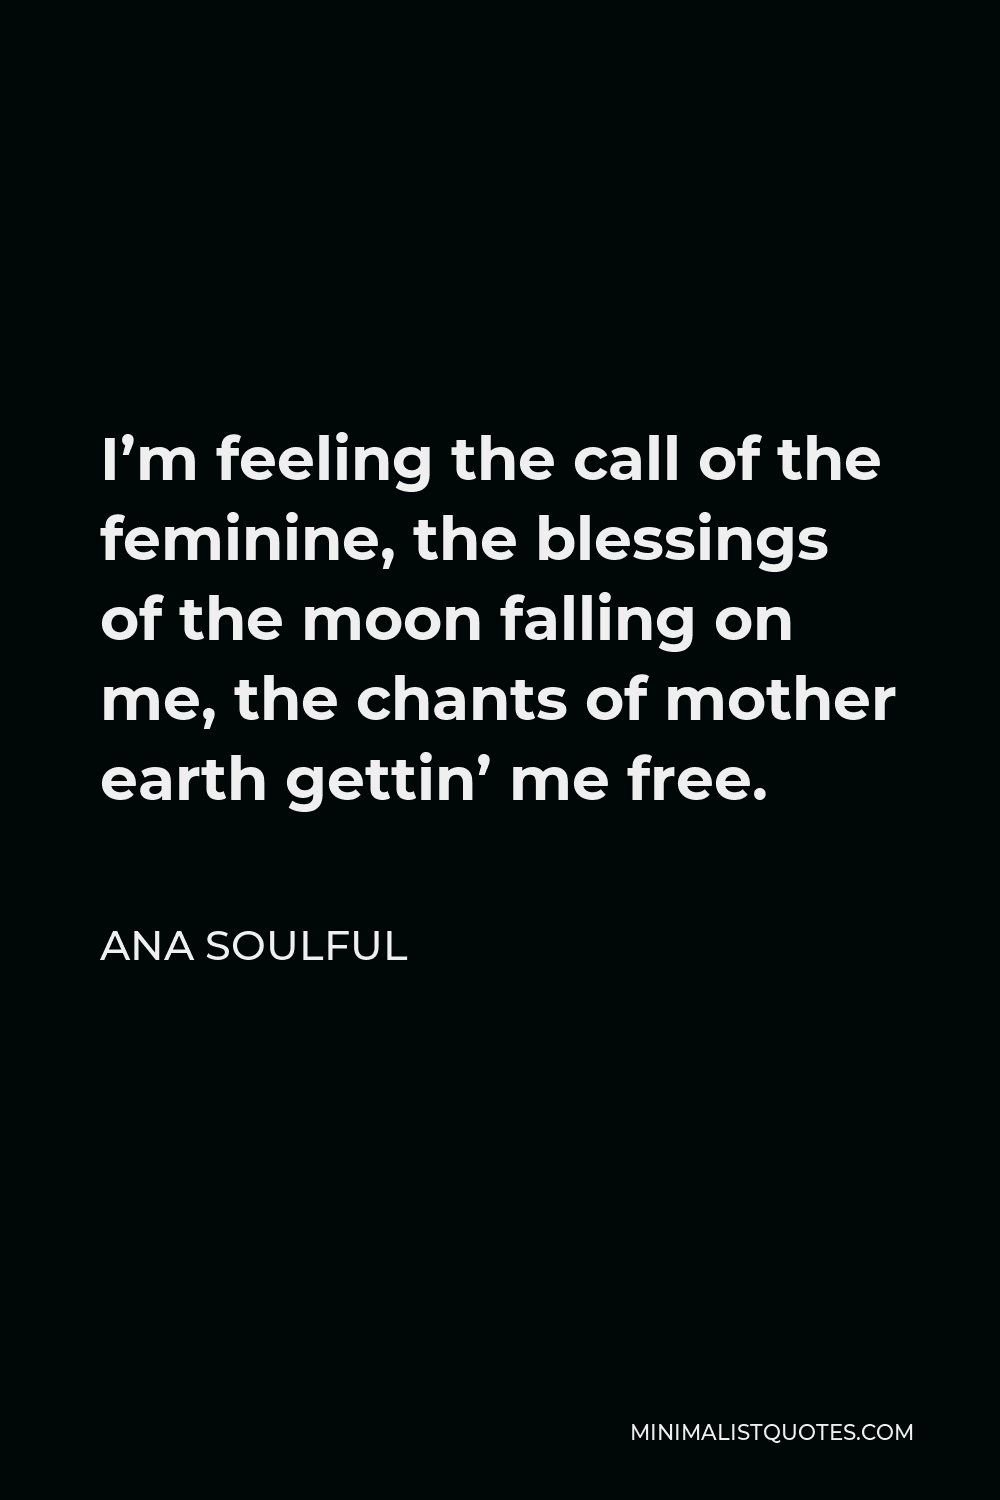 Ana Soulful Quote - I'm feeling the call of the feminine, the blessings of the moon falling on me, the chants of mother earth gettin' me free.